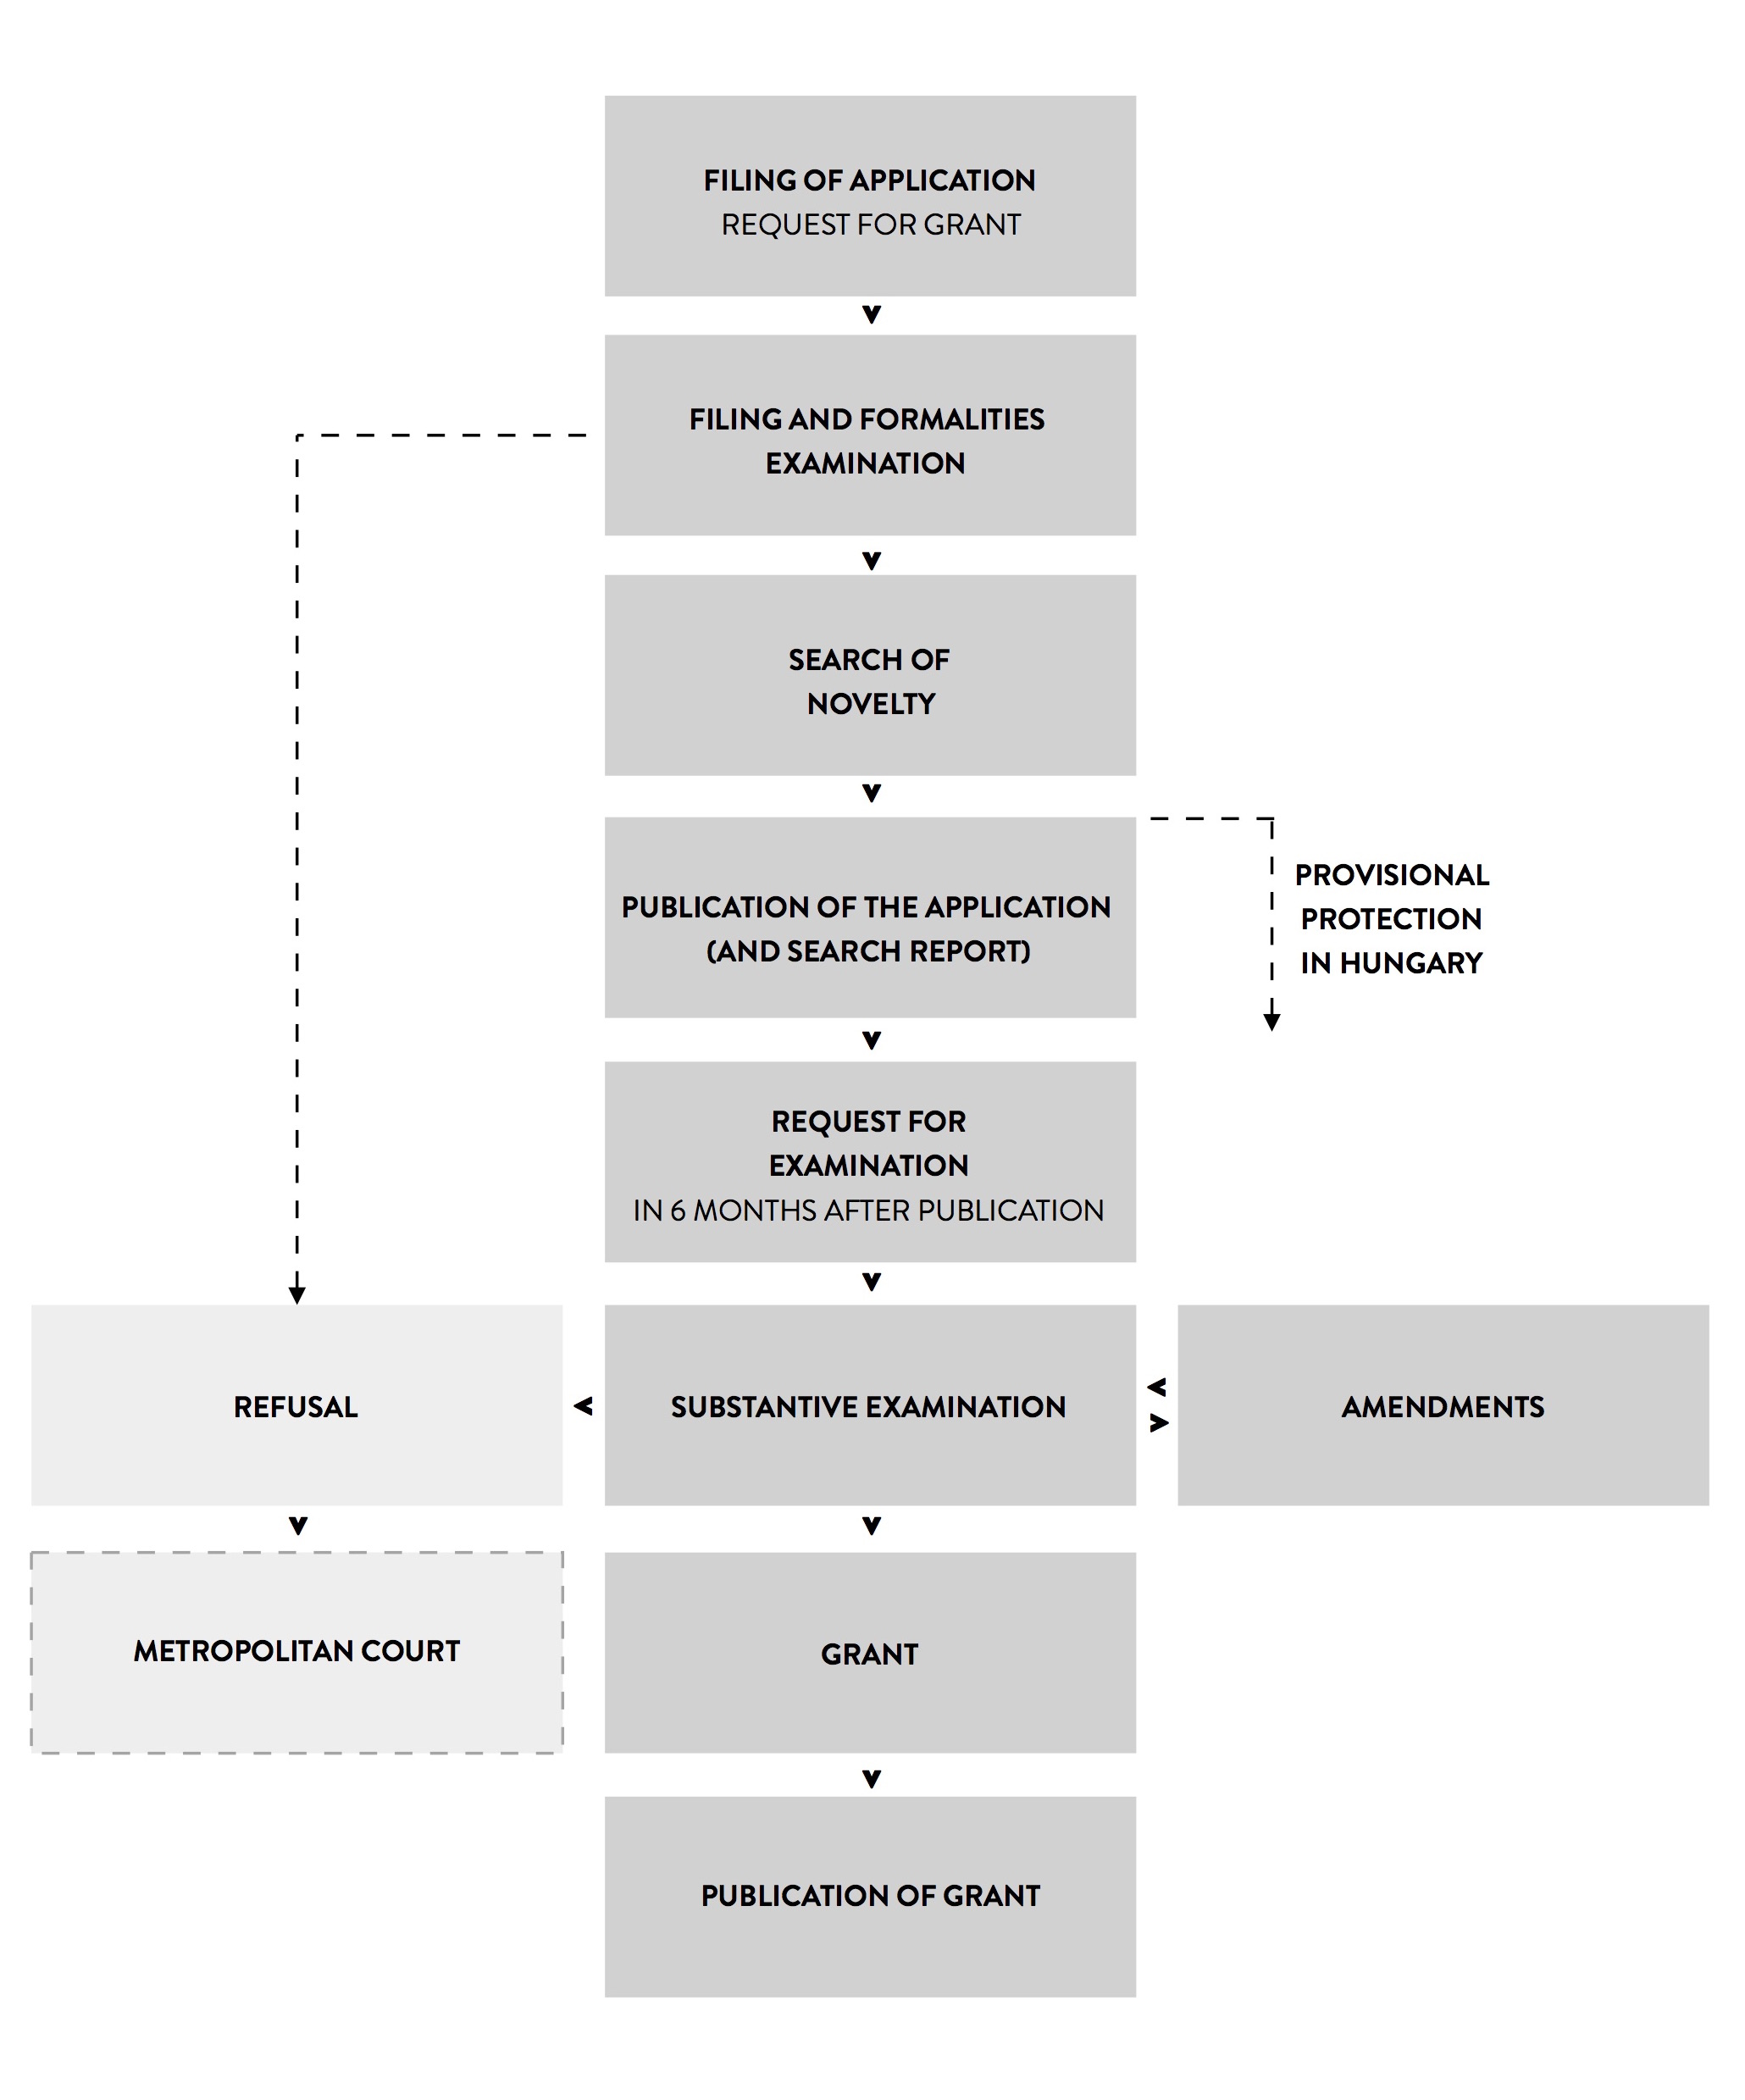 You may download the flowchart in PDF by clicking on the image.